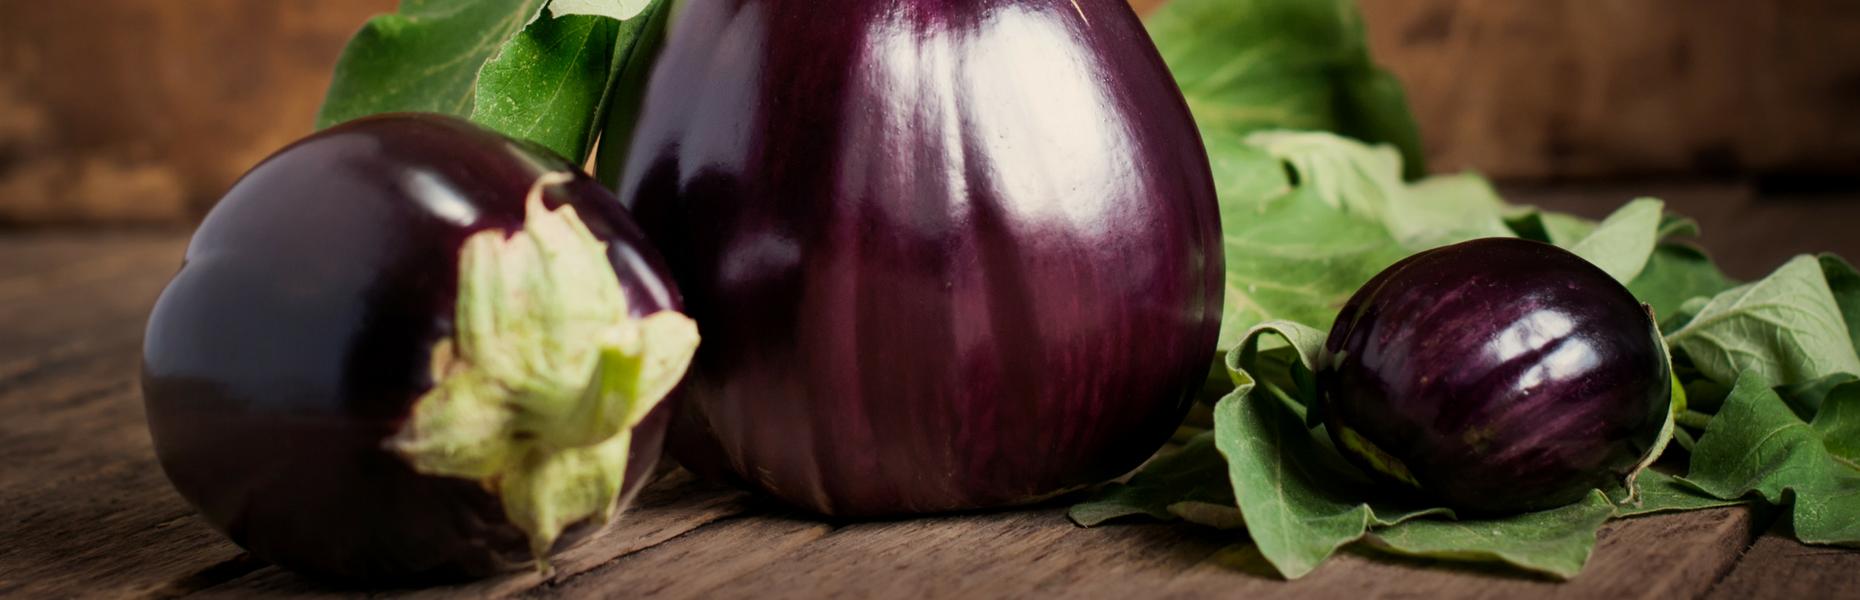 Eggplant Health Benefits